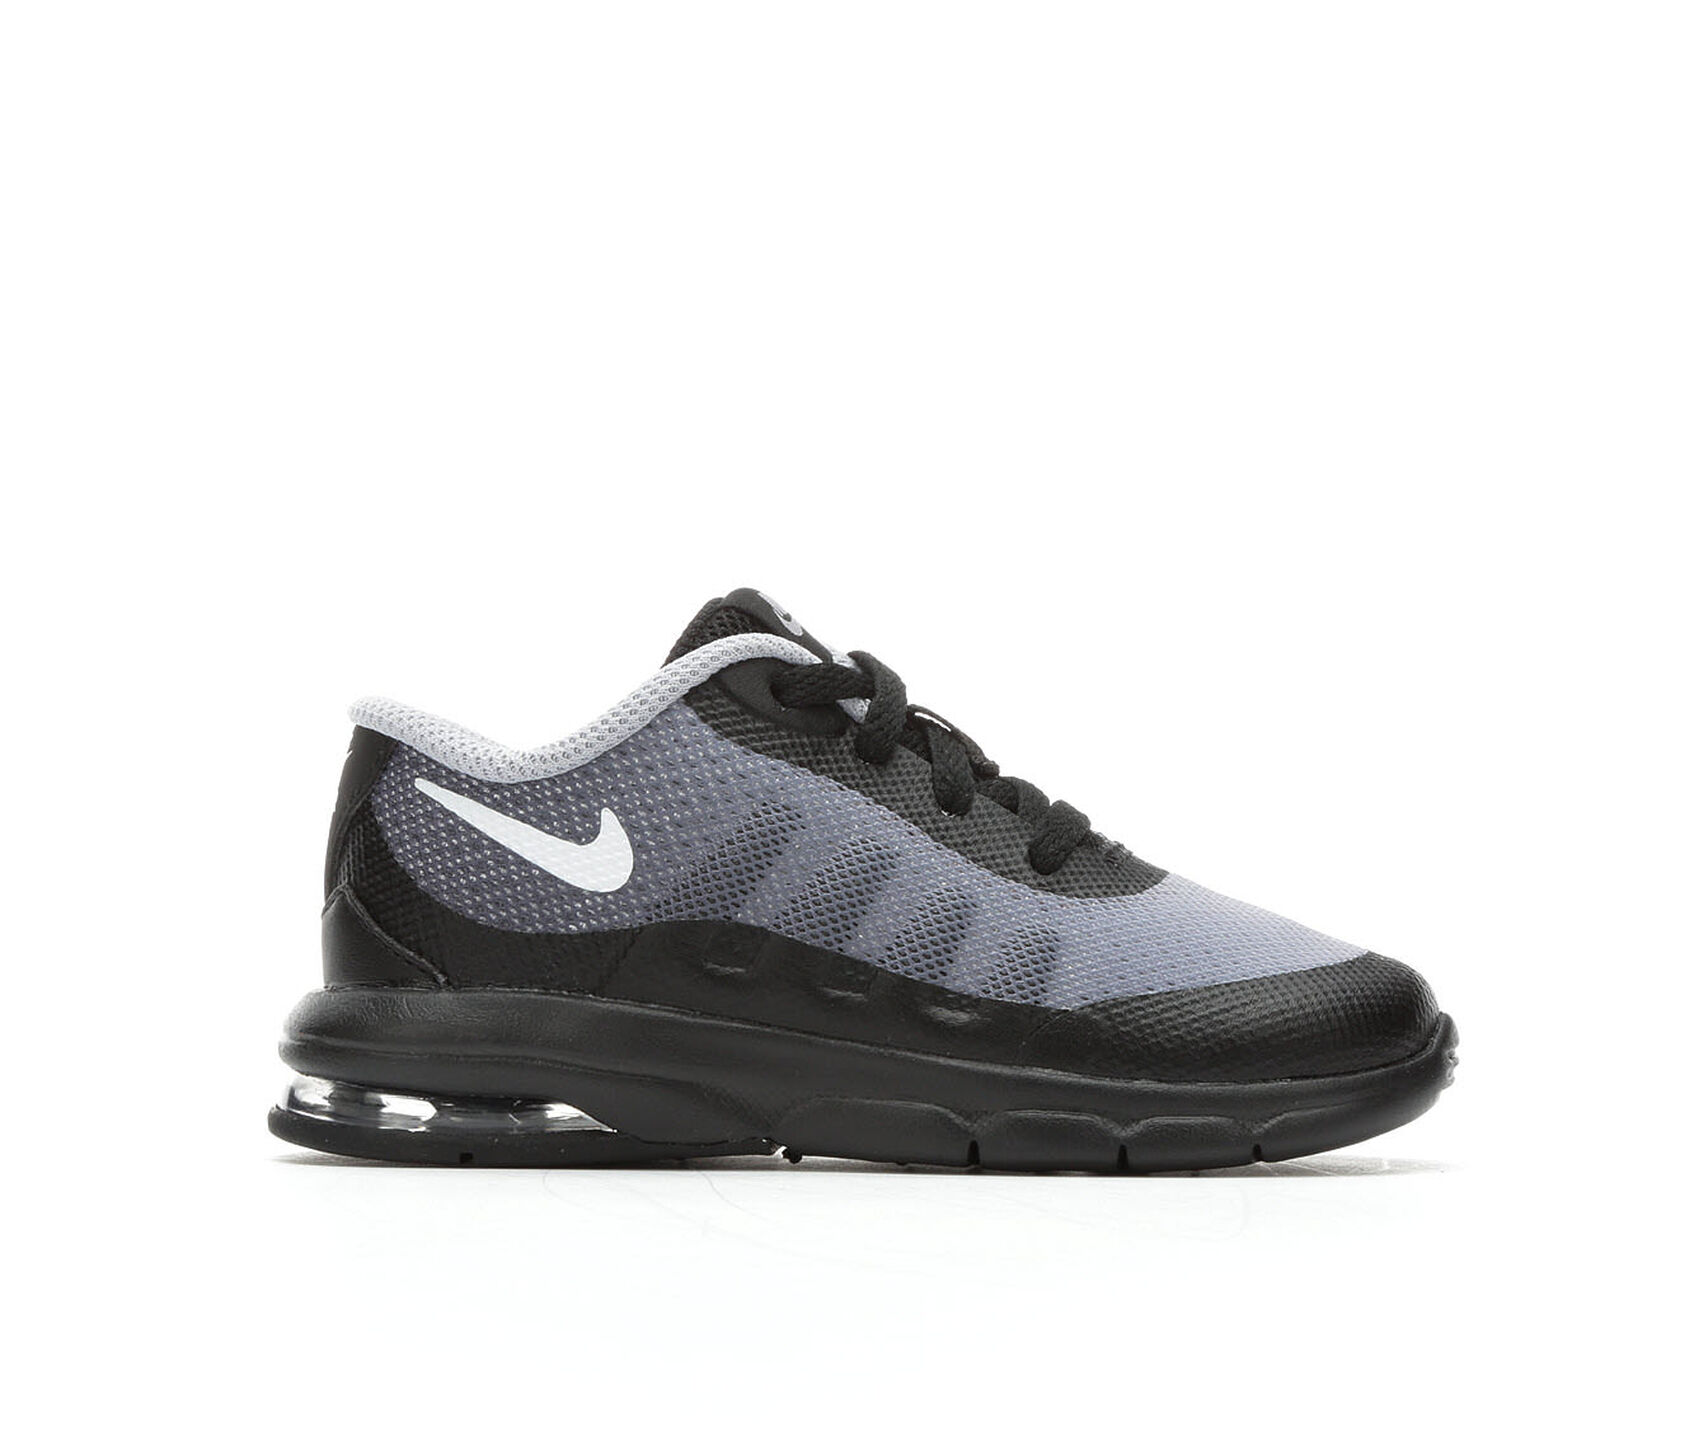 Shop Nike at Shoe Carnival! Find great deals on Nike shoes in Shoe Carnival stores and online!